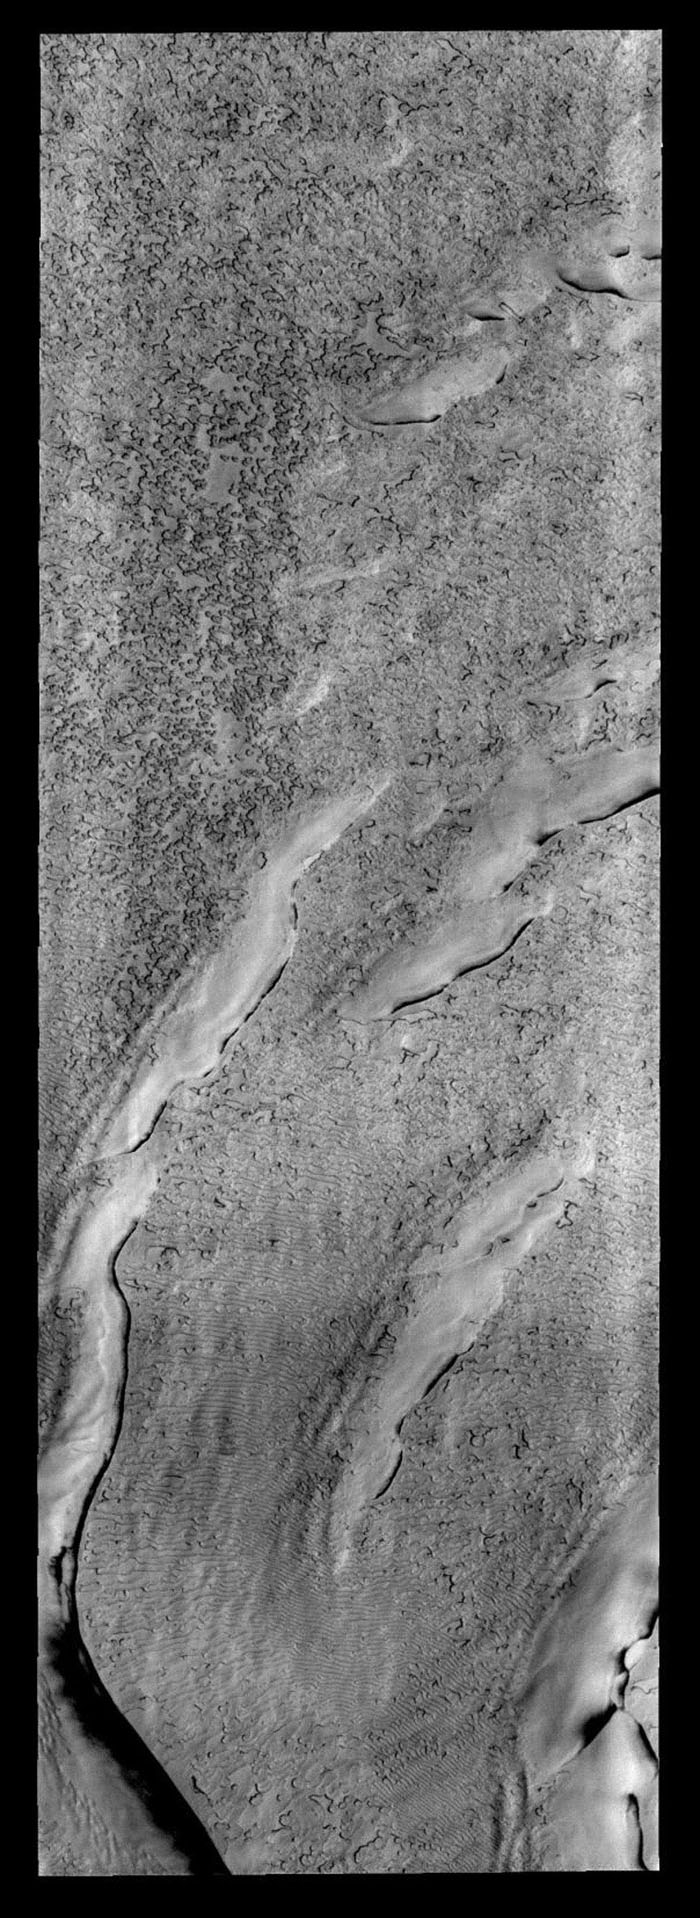 The 'holey' texture of the image captured by NASA's 2001 Mars Odyssey spacecraft of the North Polar cap is called 'swiss-cheese,' while the linear texture at the bottom of the frame is called 'thumbprint terrain.'